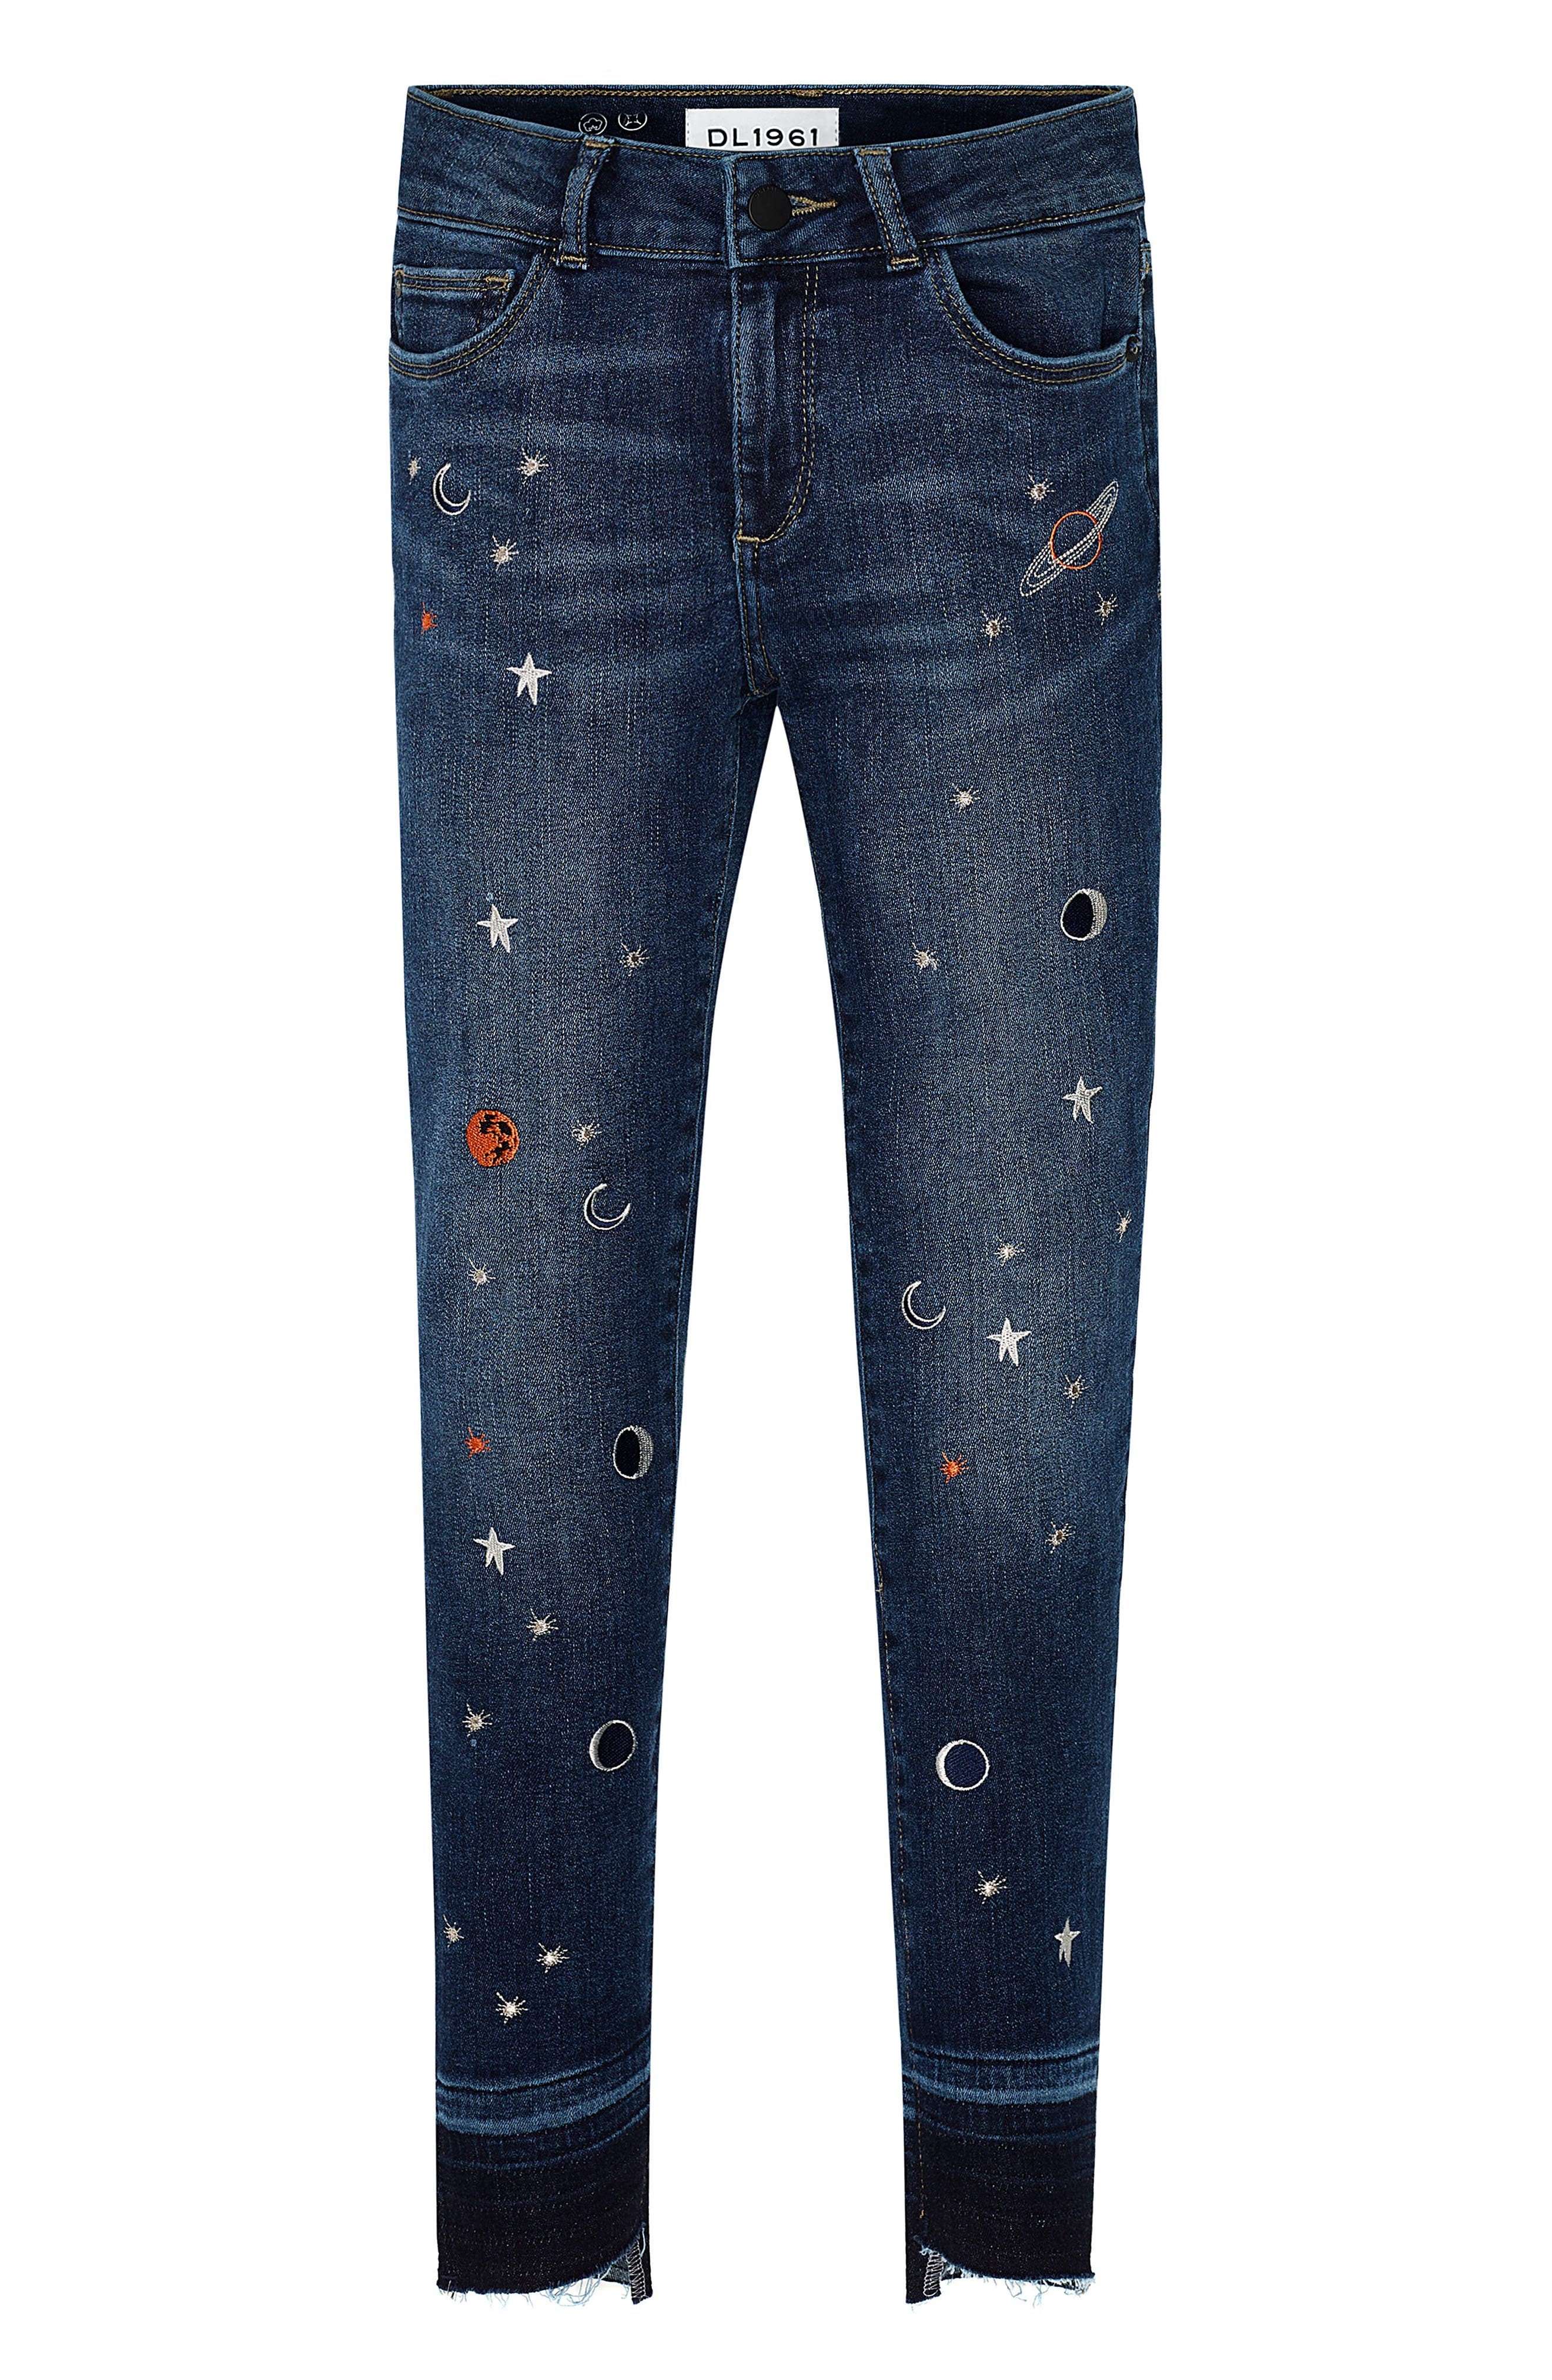 Alternate Image 1 Selected - DL1961 Chloe Galaxy Embroidered Skinny Jeans (Big Girls)